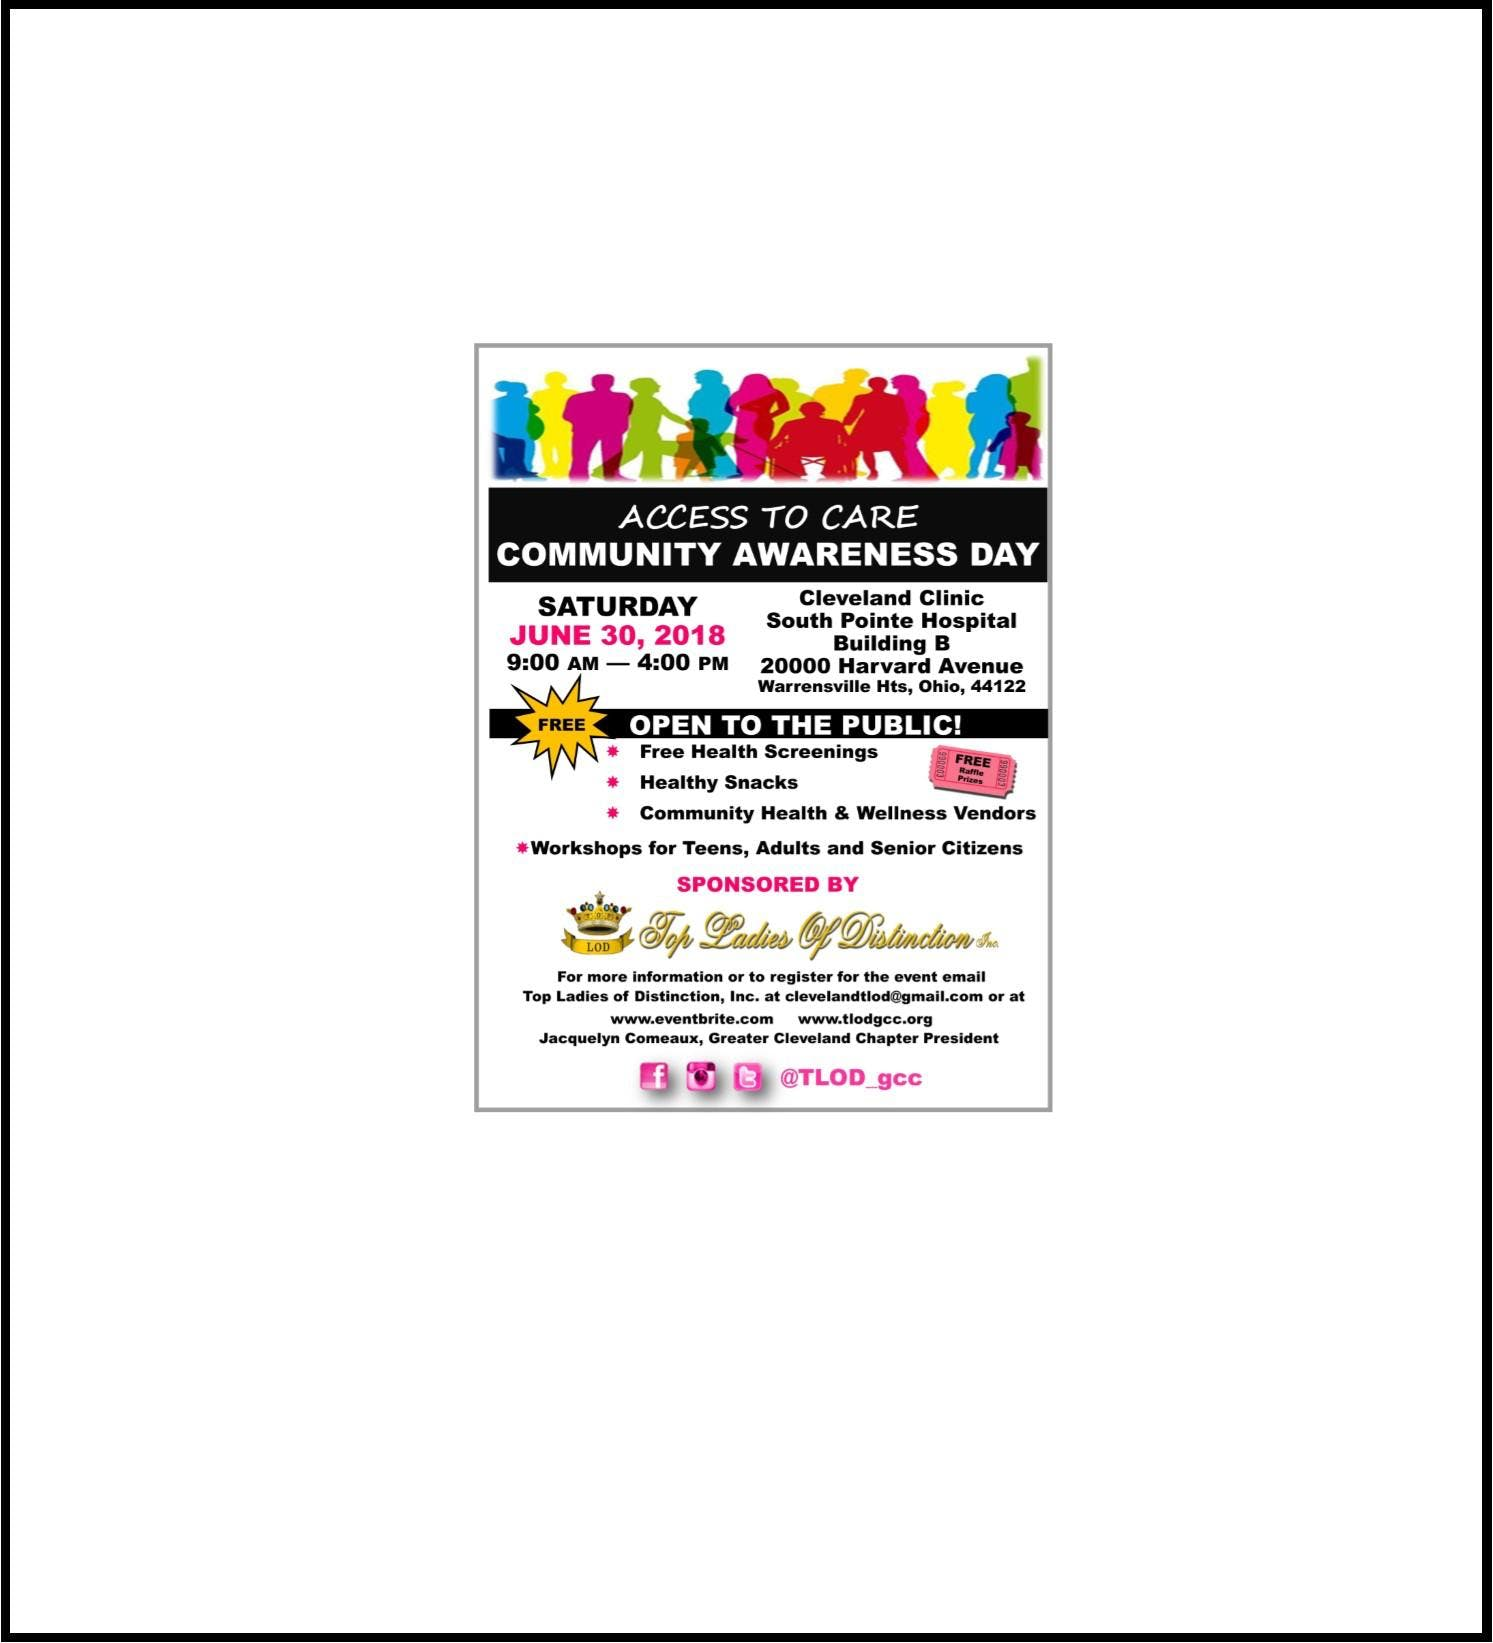 TLOD Greater Cleveland presents &quotAccess to Care  Community Awareness Day&quot